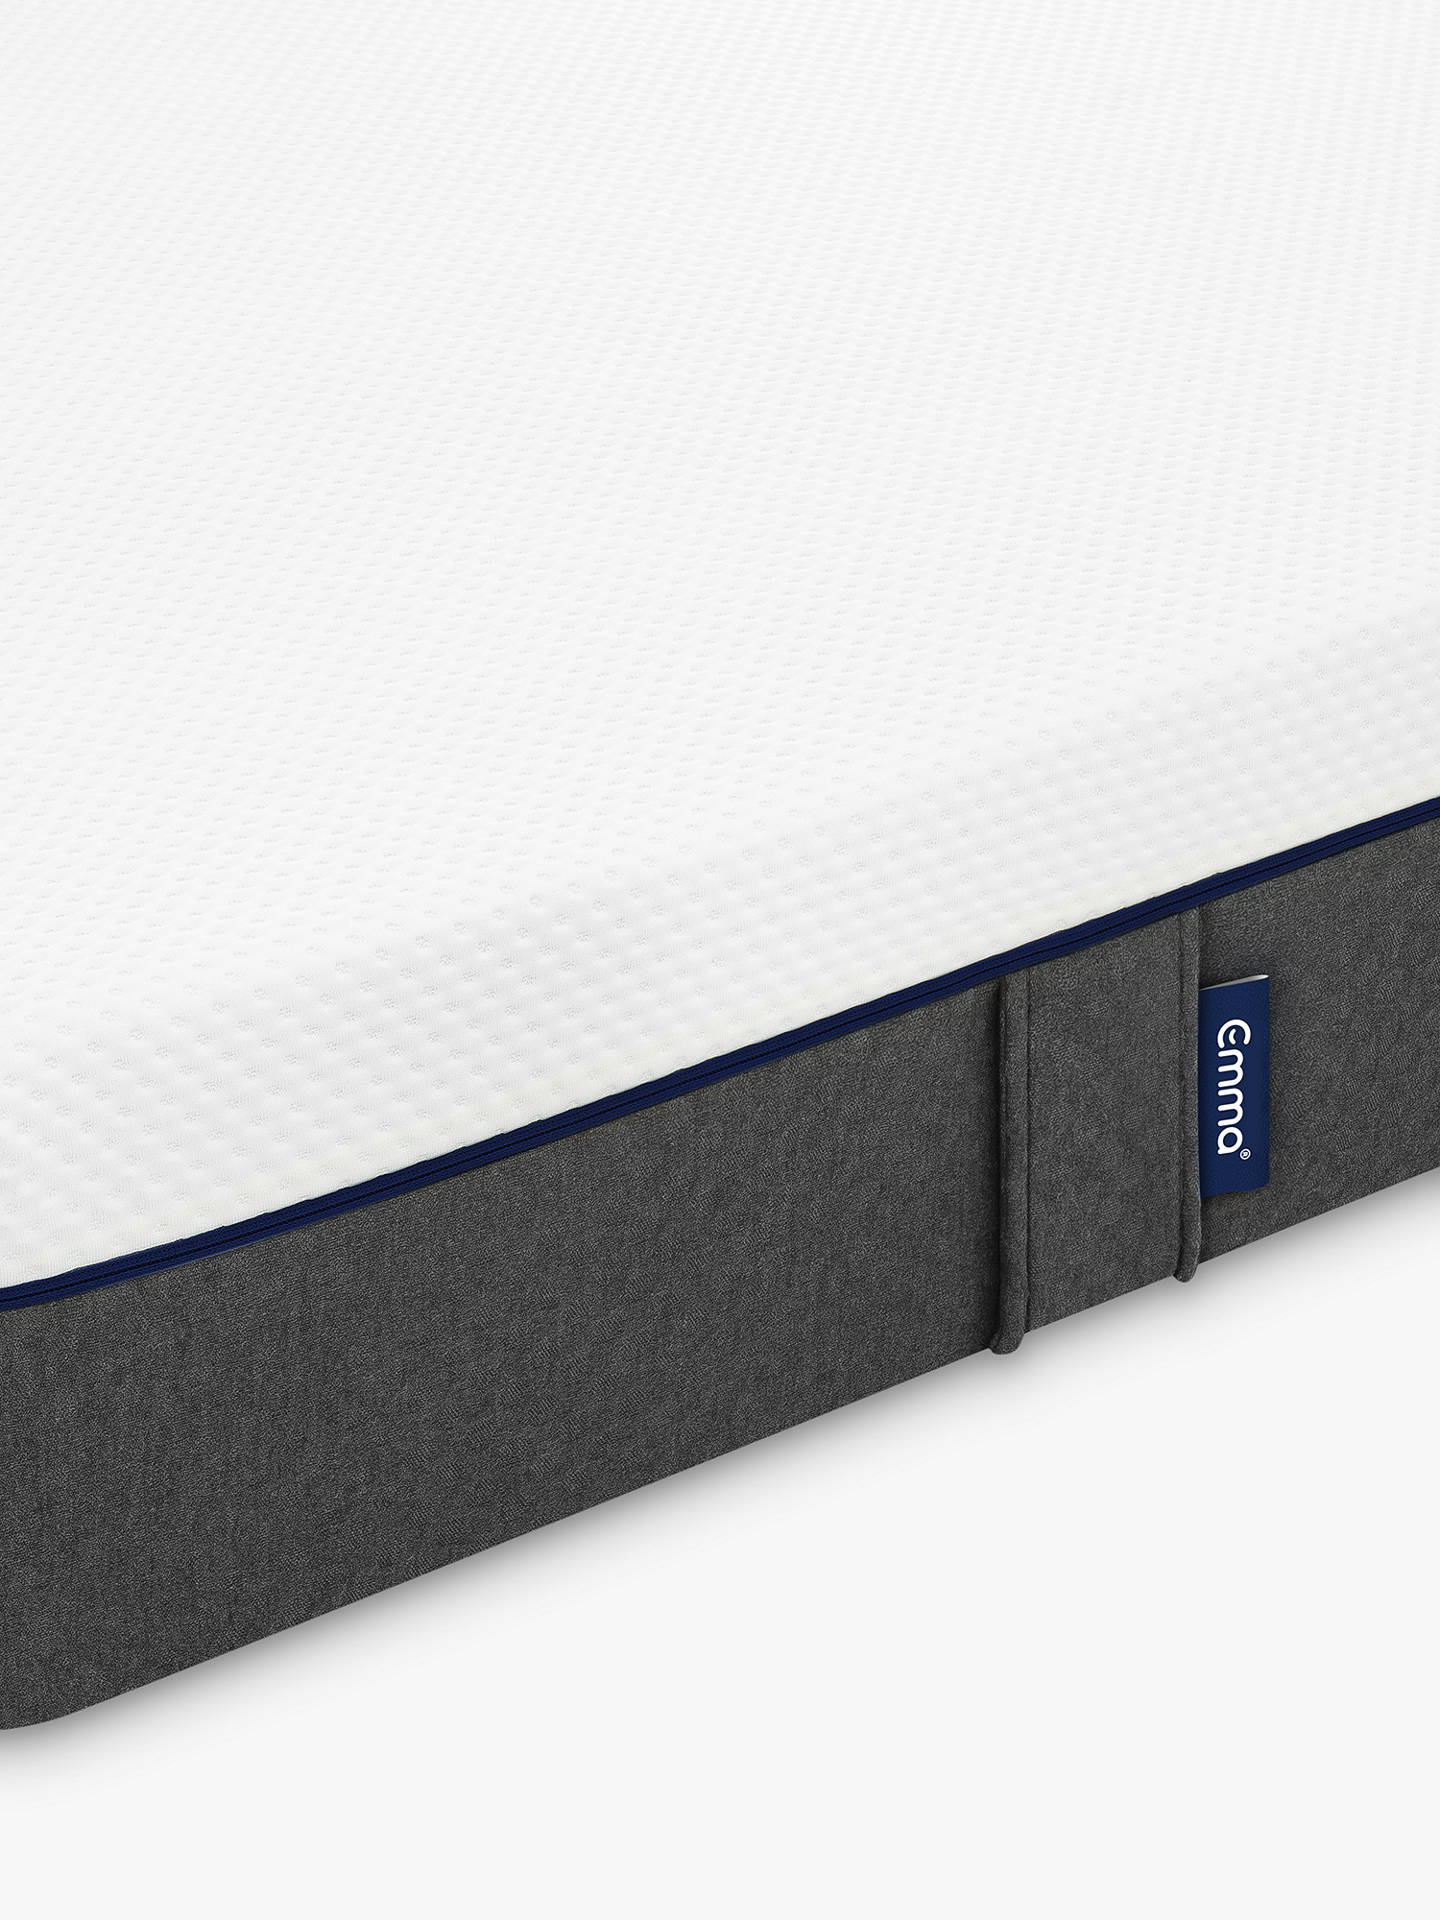 Buy Emma Original Memory Foam Mattress, Medium Tension, King Size Online at johnlewis.com